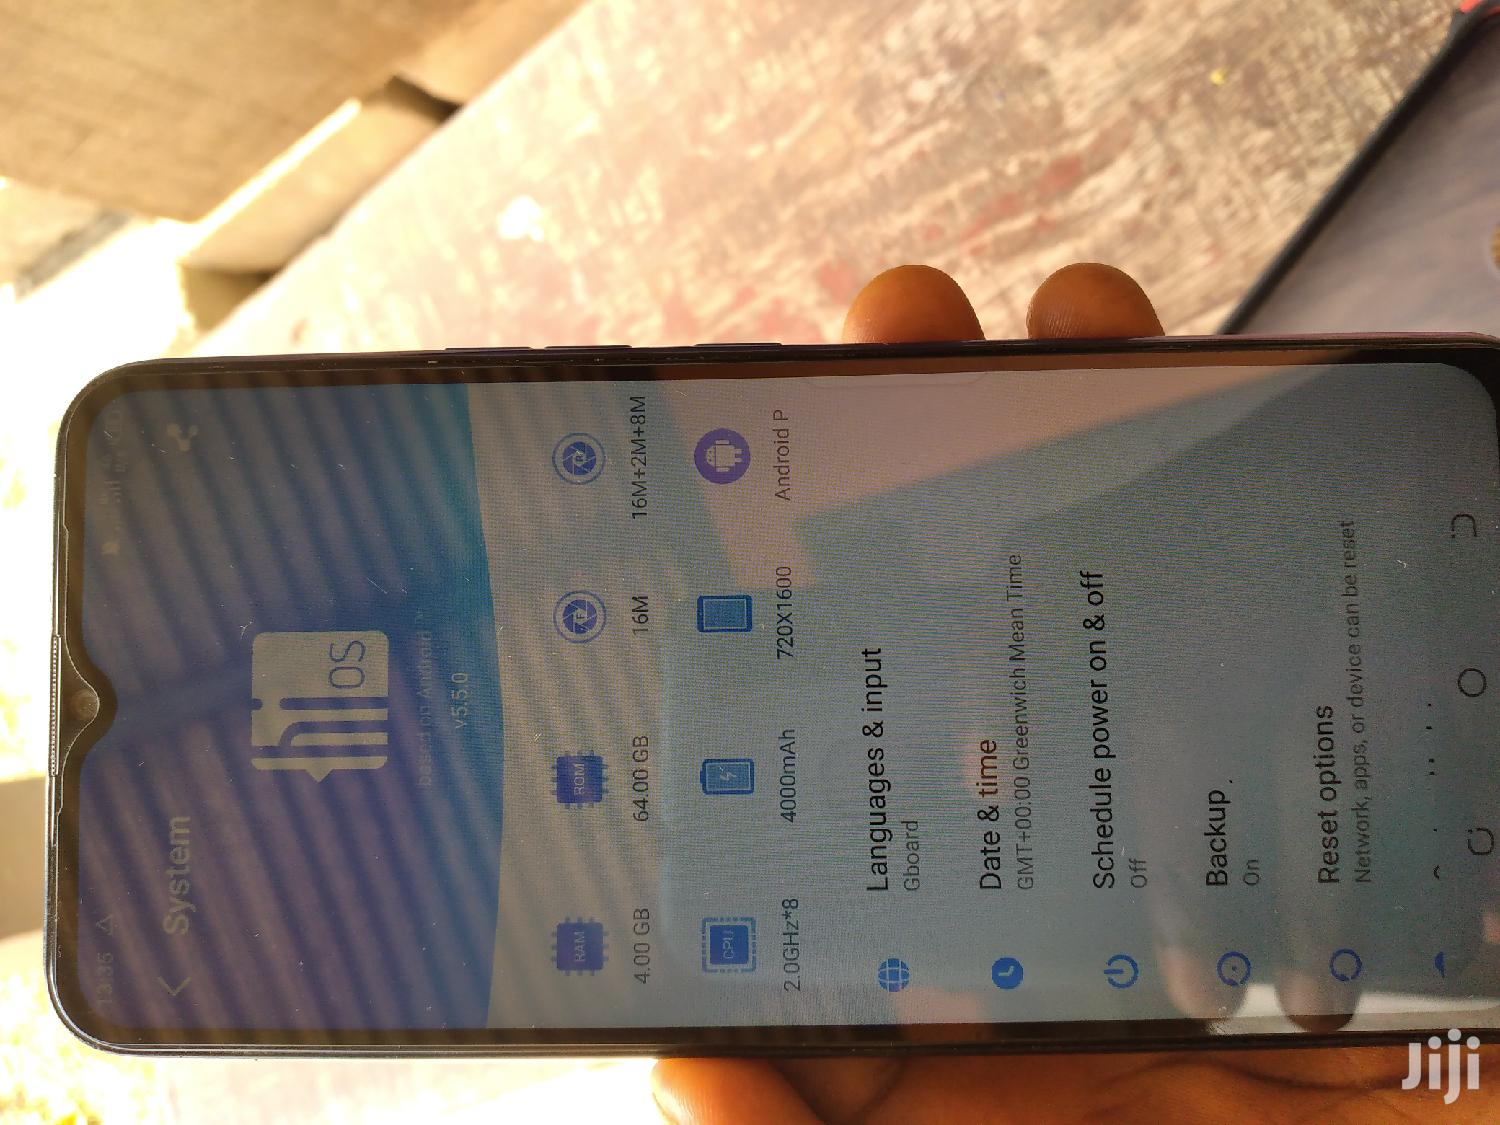 Tecno Camon 12 64 GB Blue | Mobile Phones for sale in Tema Metropolitan, Greater Accra, Ghana